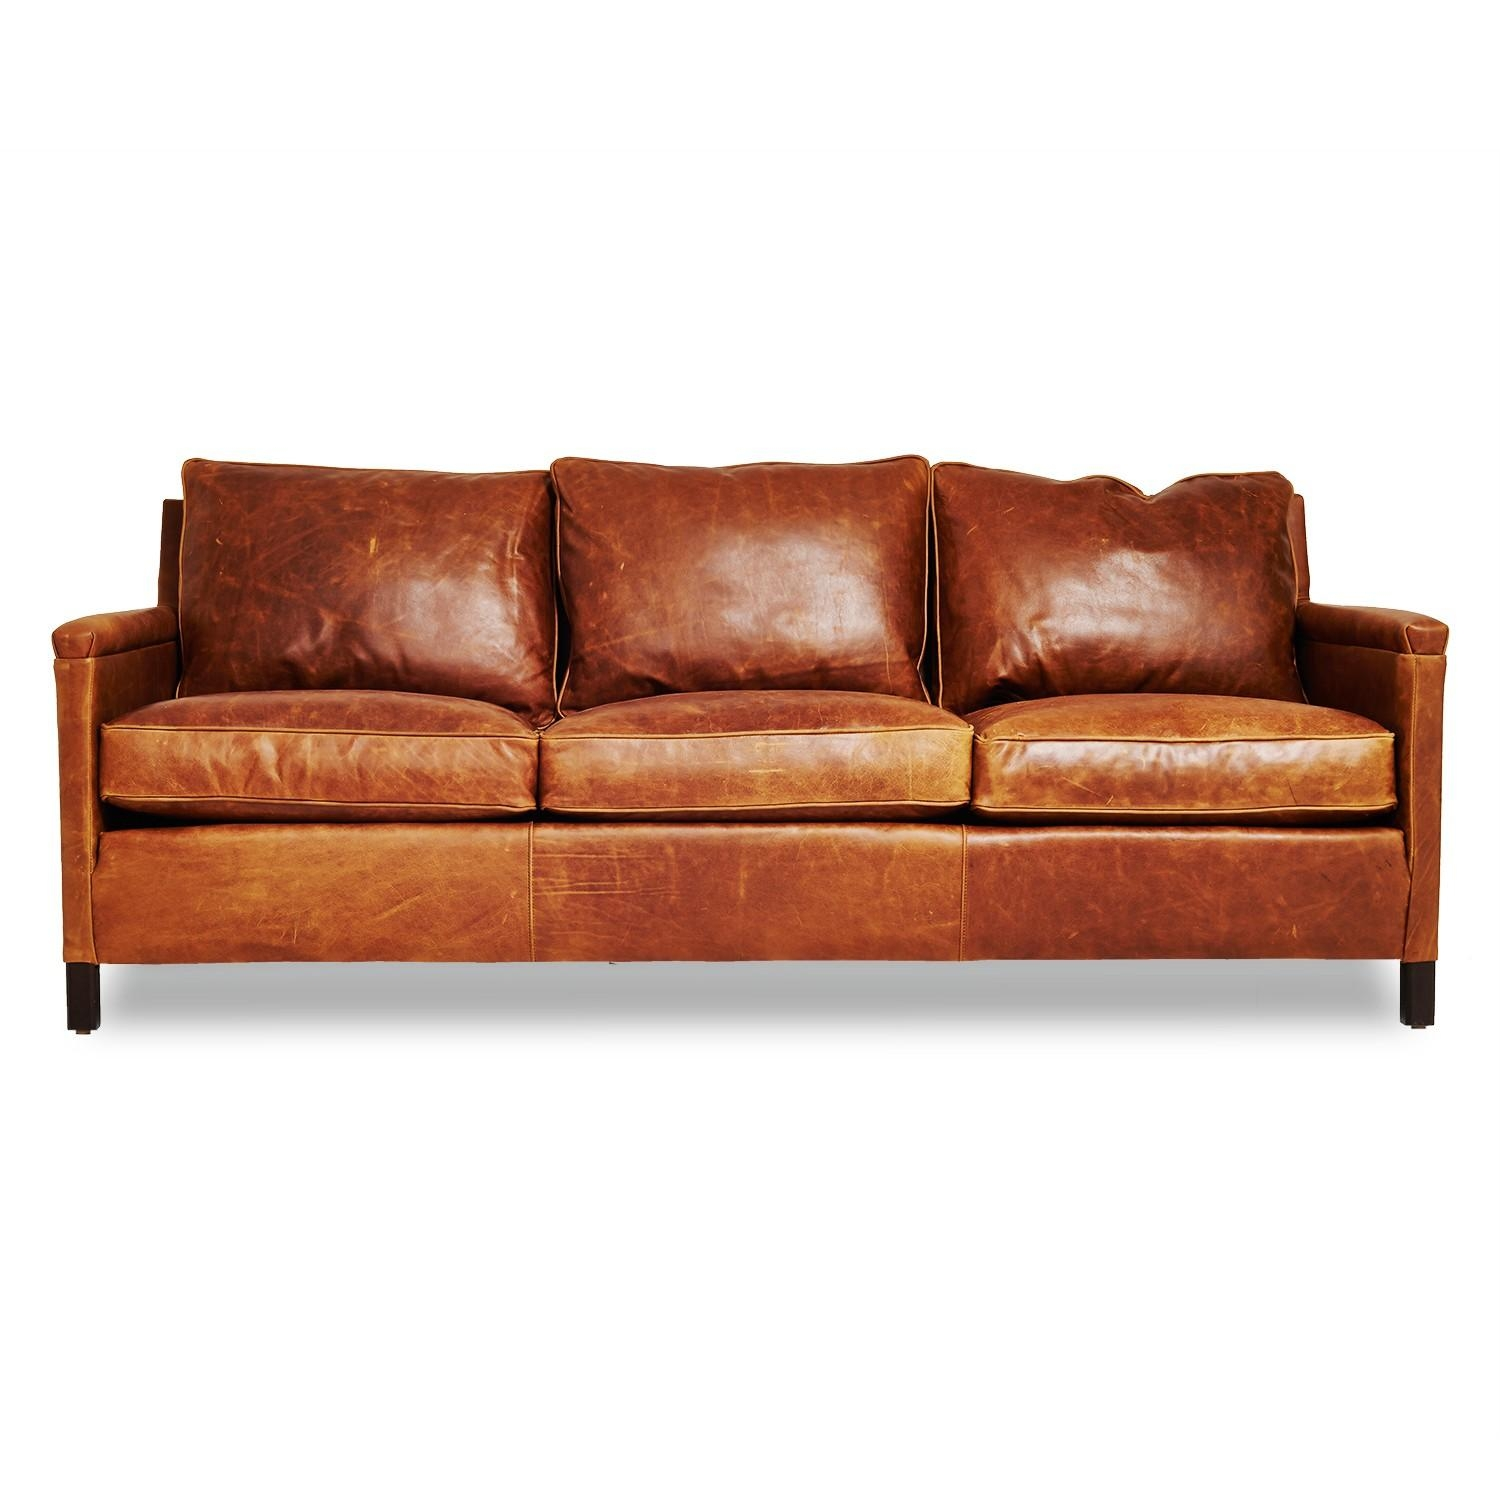 2017 Latest Camel Colored Leather Sofas Sofa Ideas